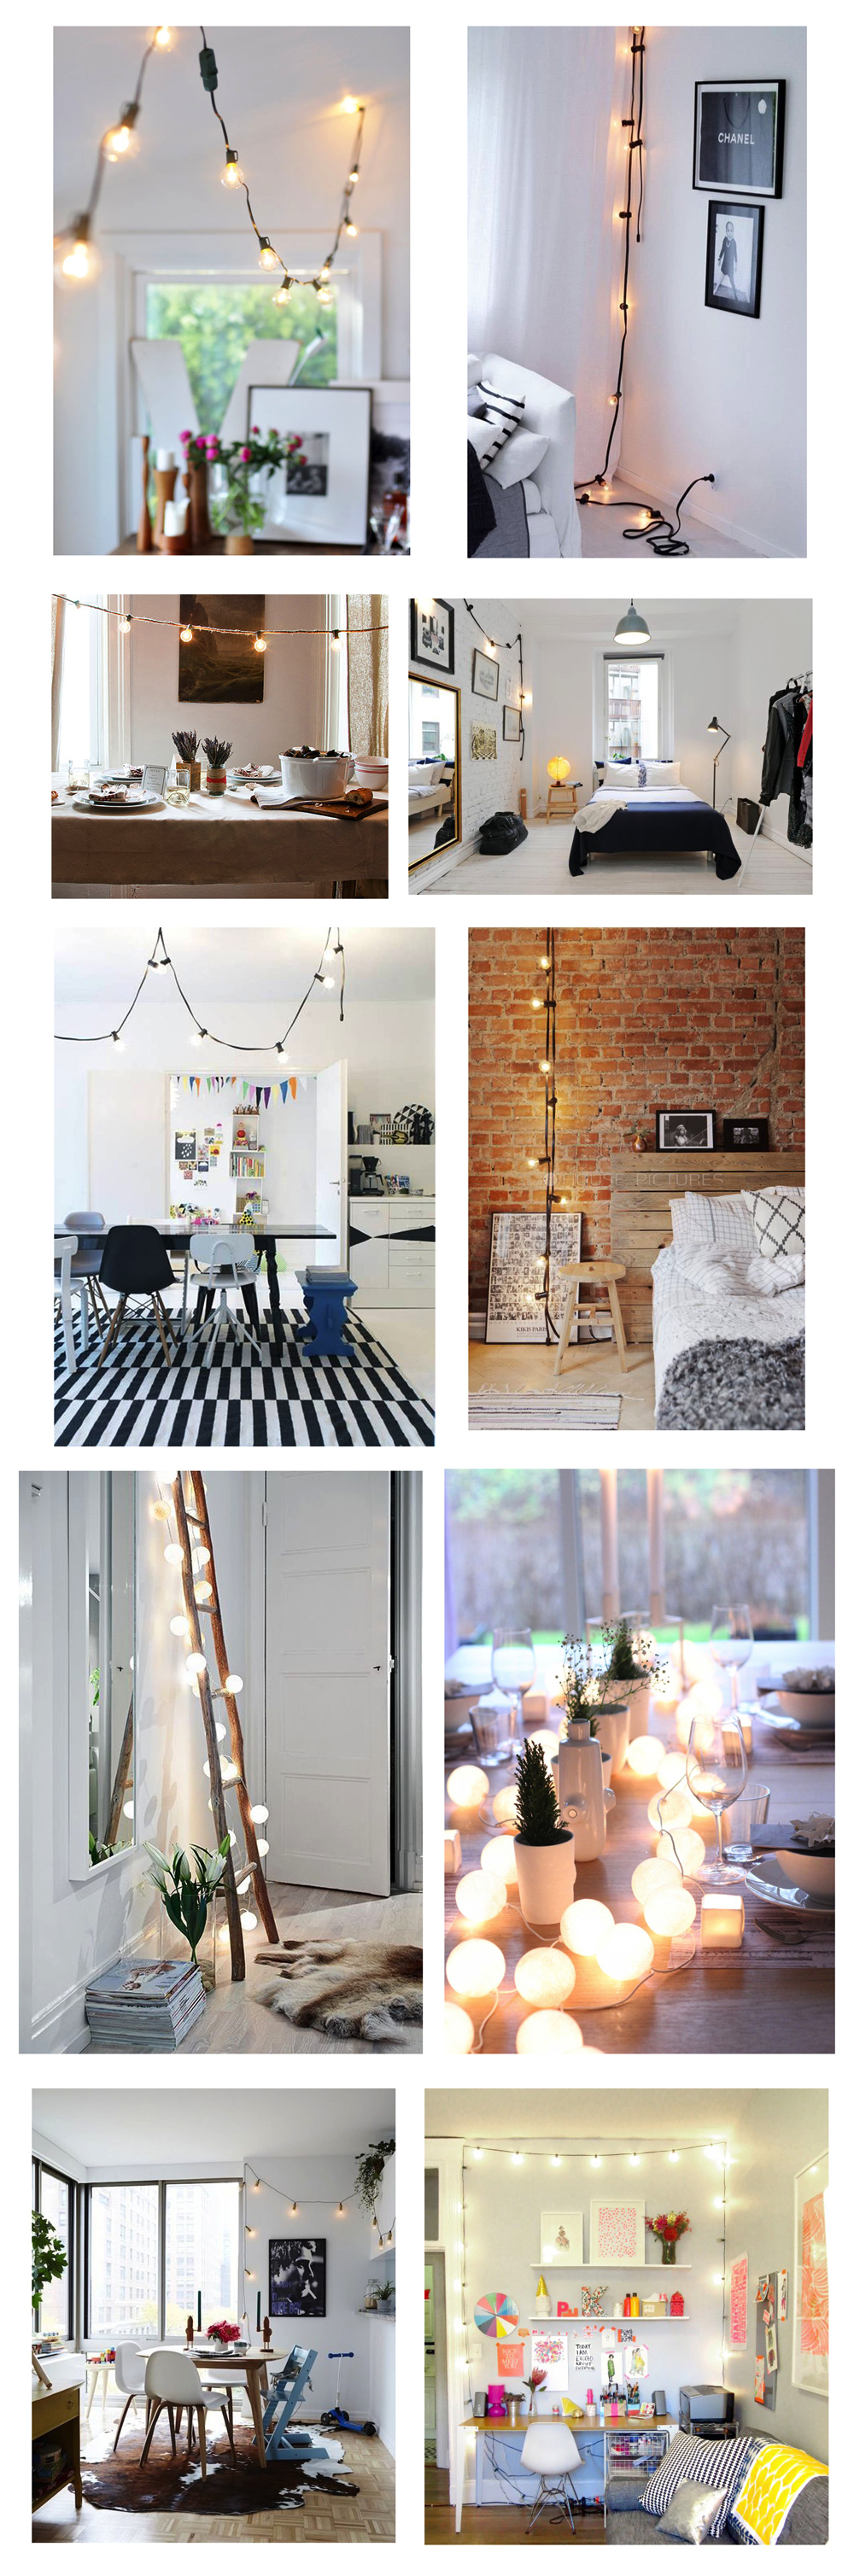 Indoor string lights for sale - Decorating With Hanging Globe Lights Indoors